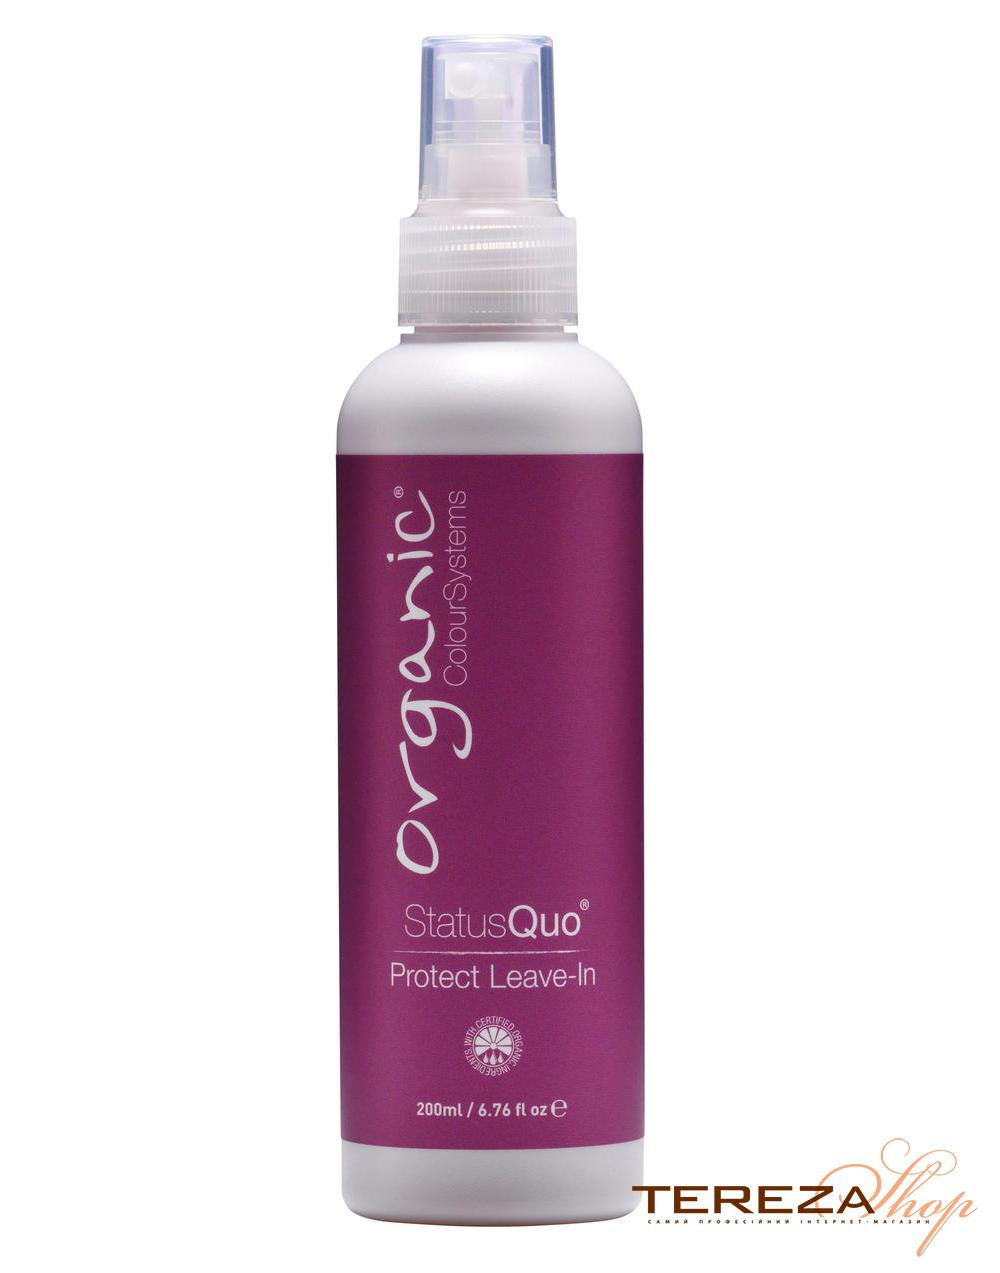 STATUS QUO PROTECT LEAVE-IN ORGANIC | Tereza Shop